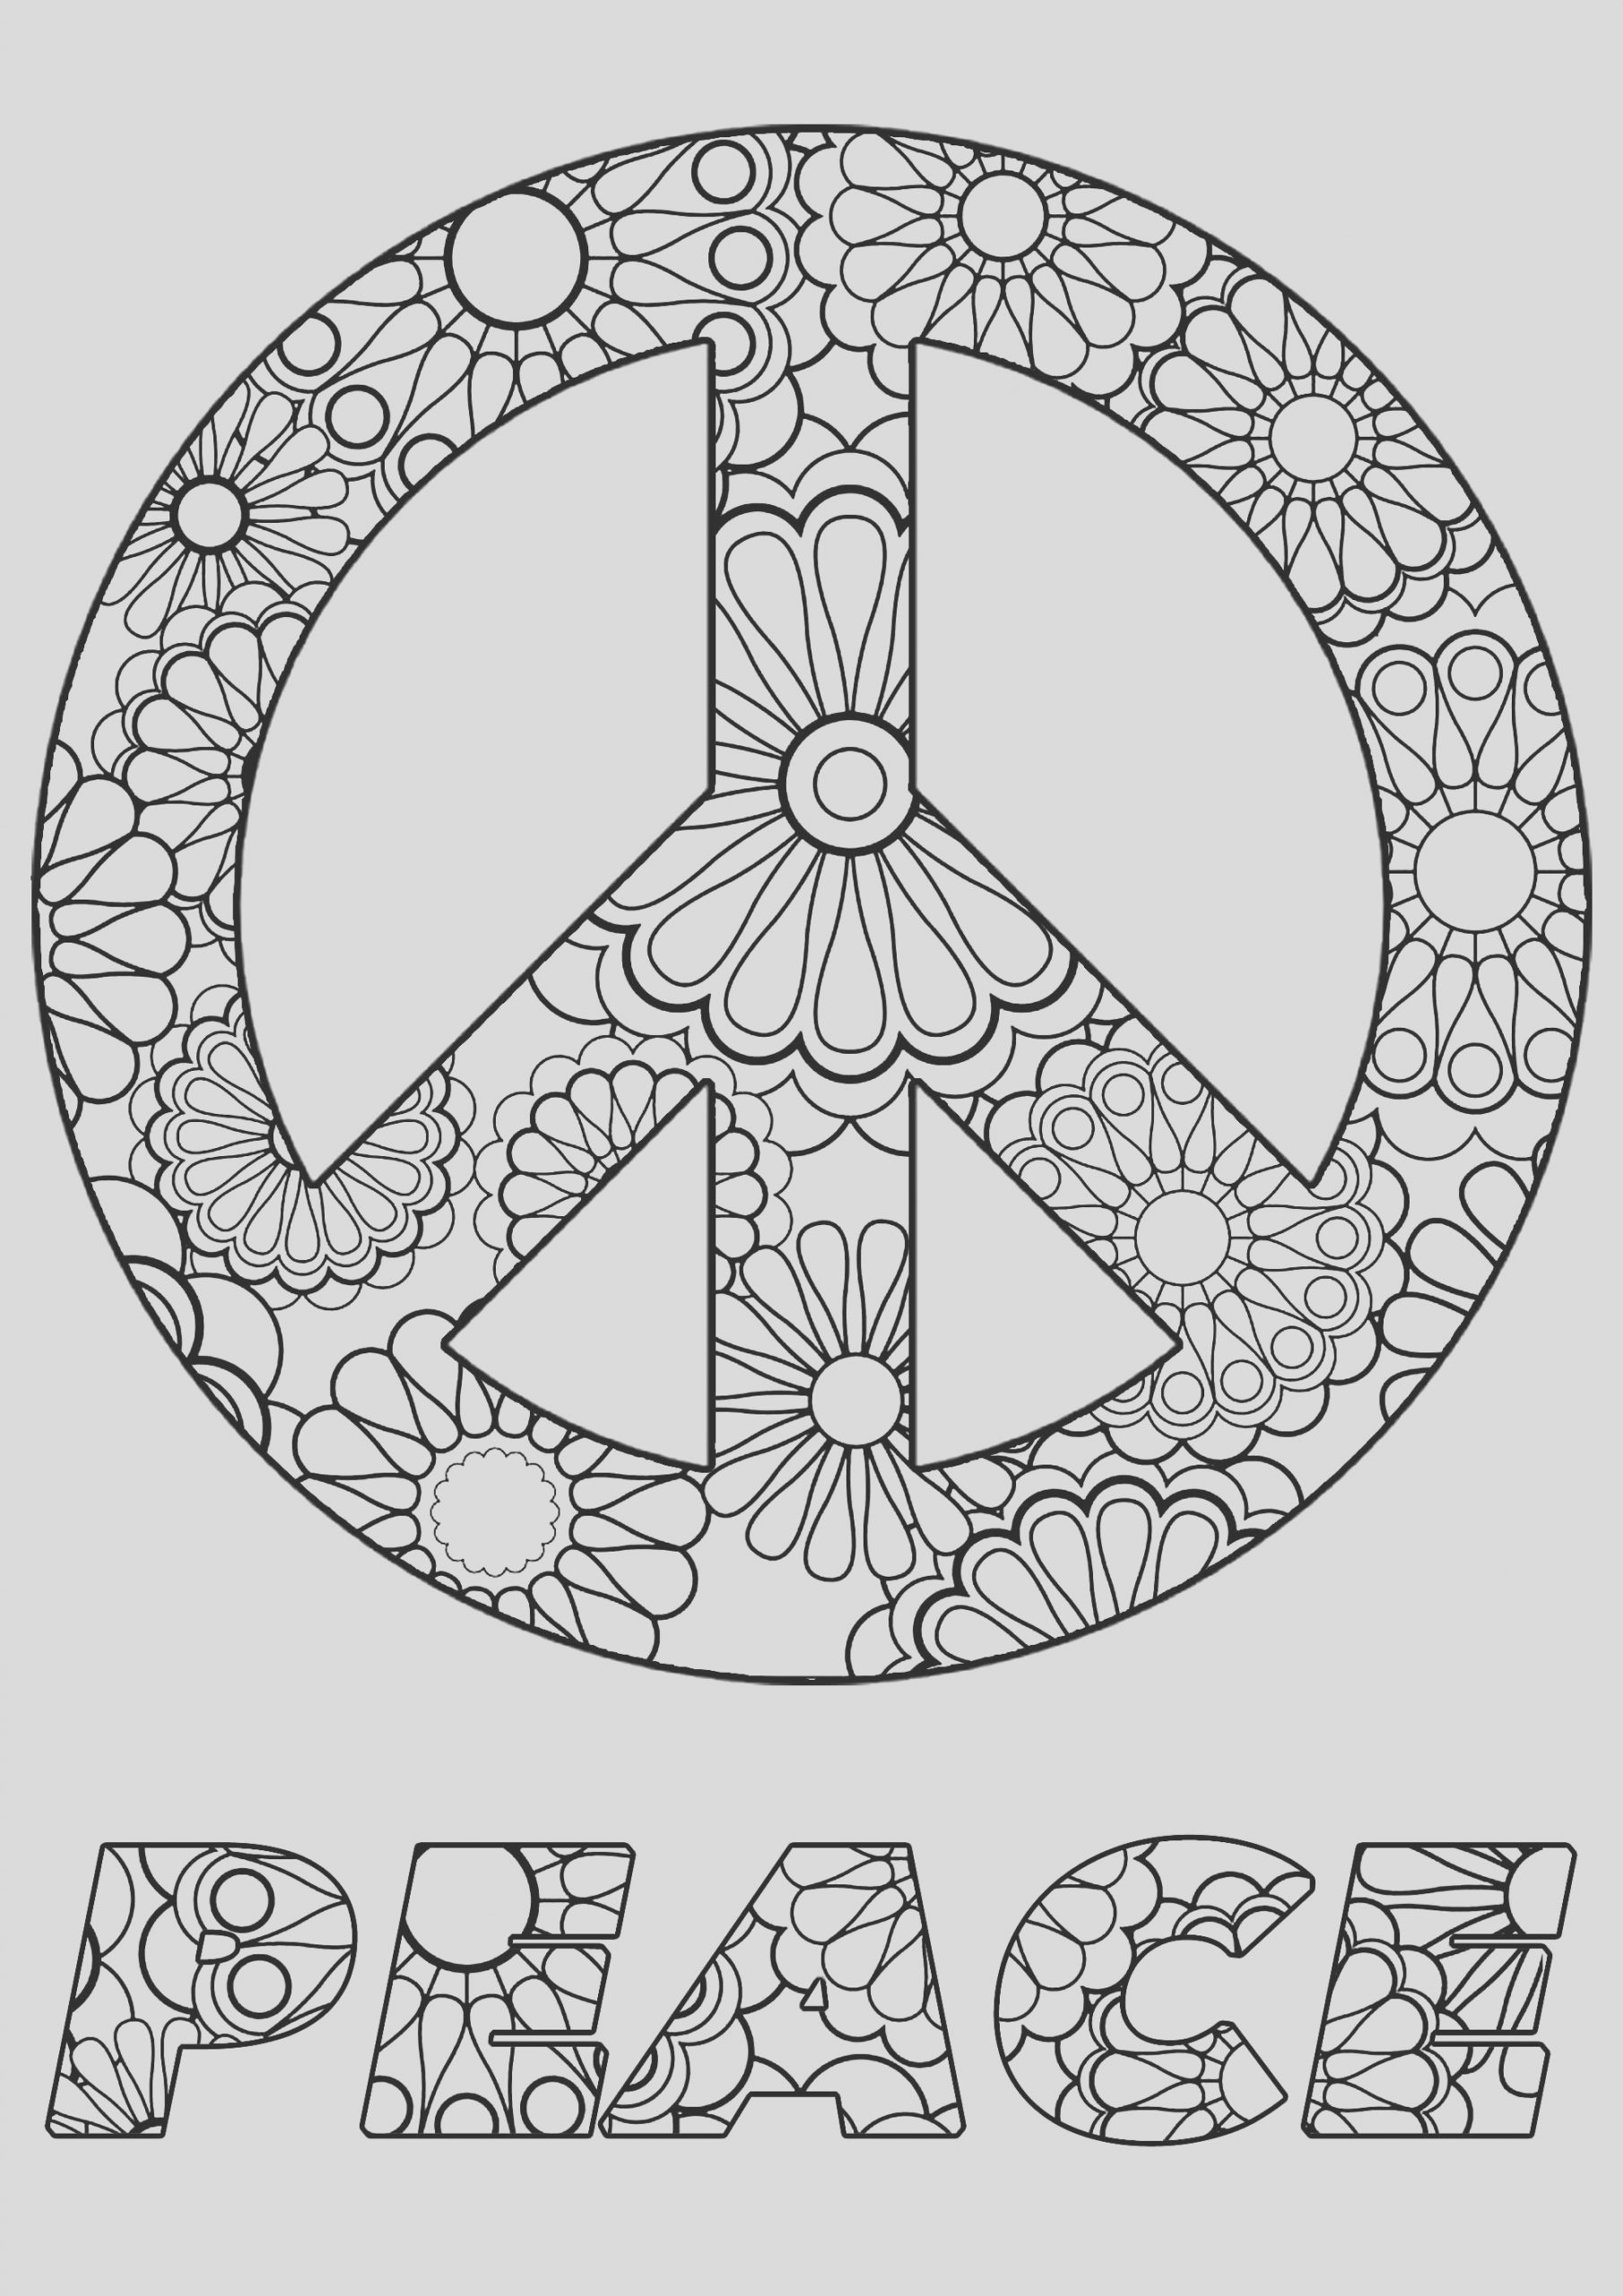 image=anti stress coloring peace symbol and flowers 1